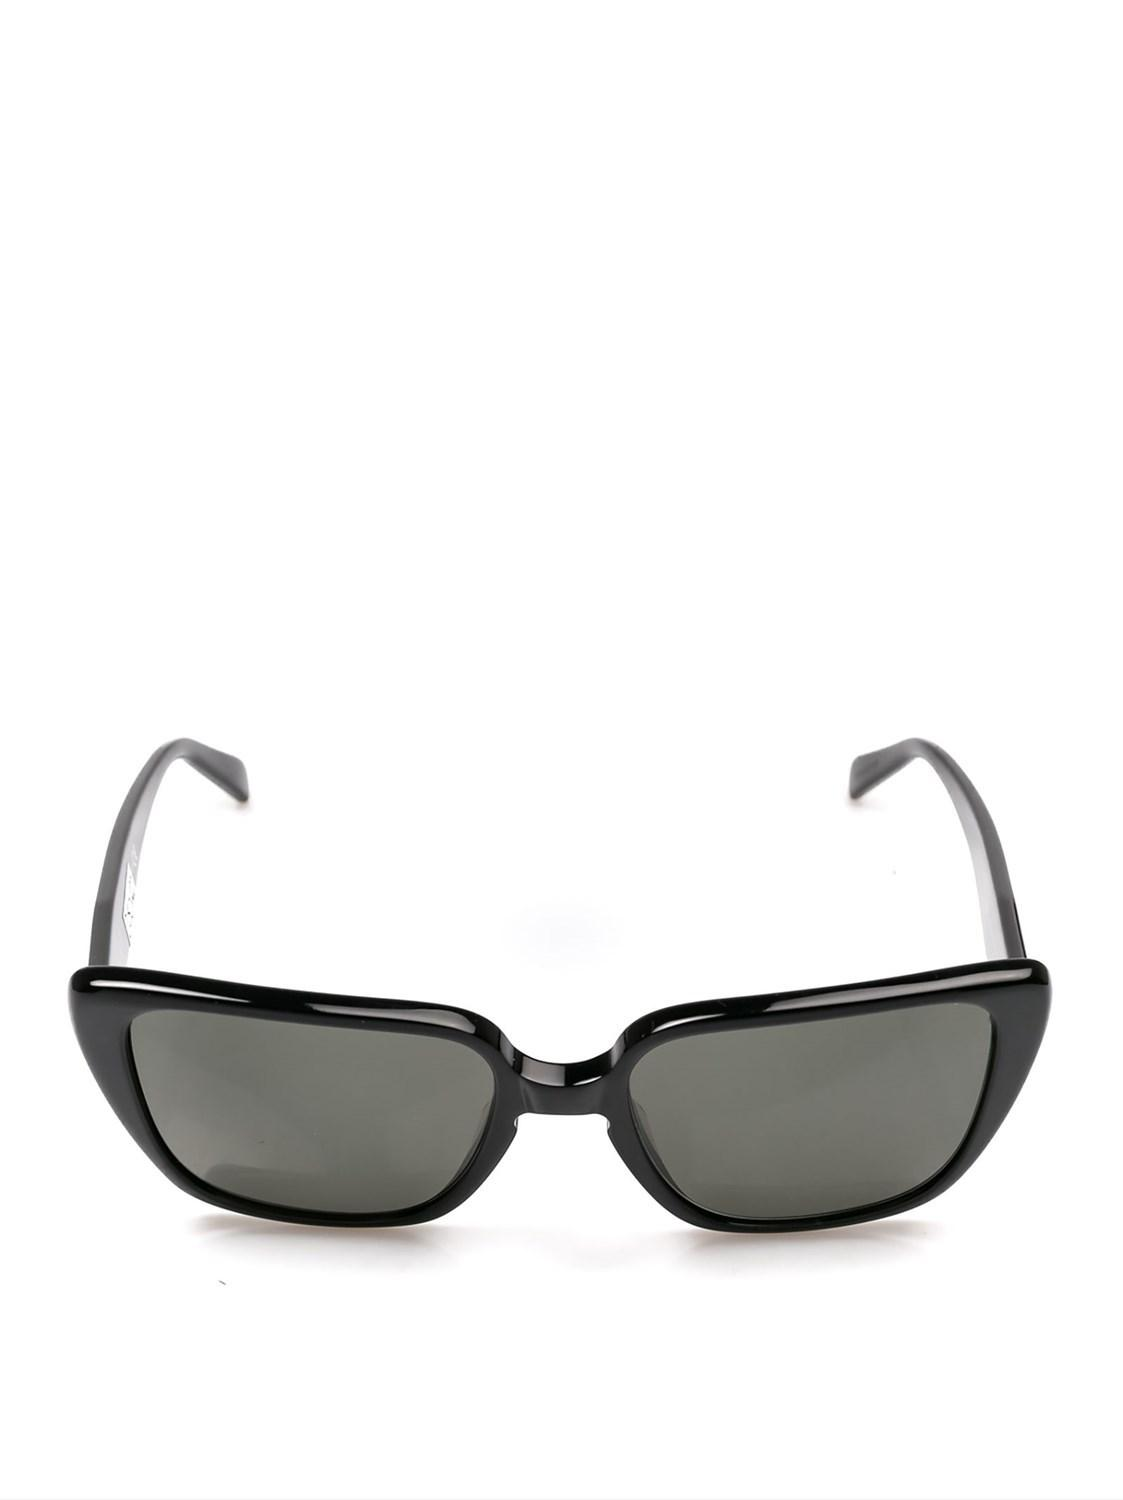 c5c96c554246 Lyst - Céline Céline Women s Cl40047i01n Black Acetate Sunglasses in ...